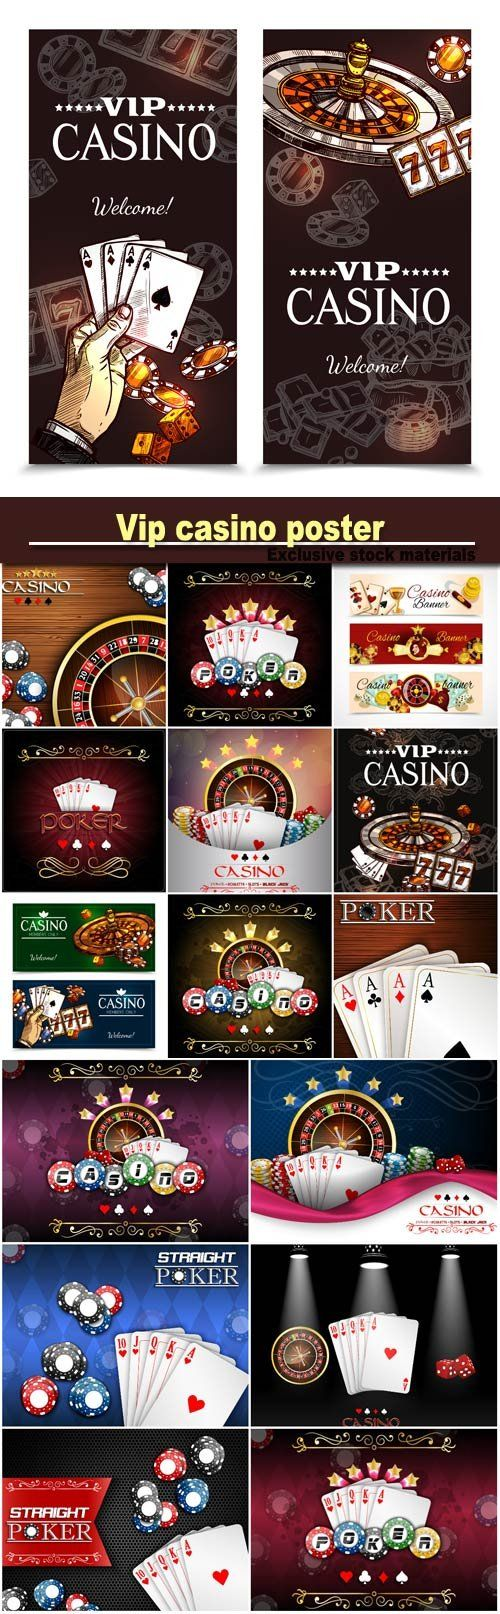 Vip casino poster with roulette wheel cards for poker play chips dice